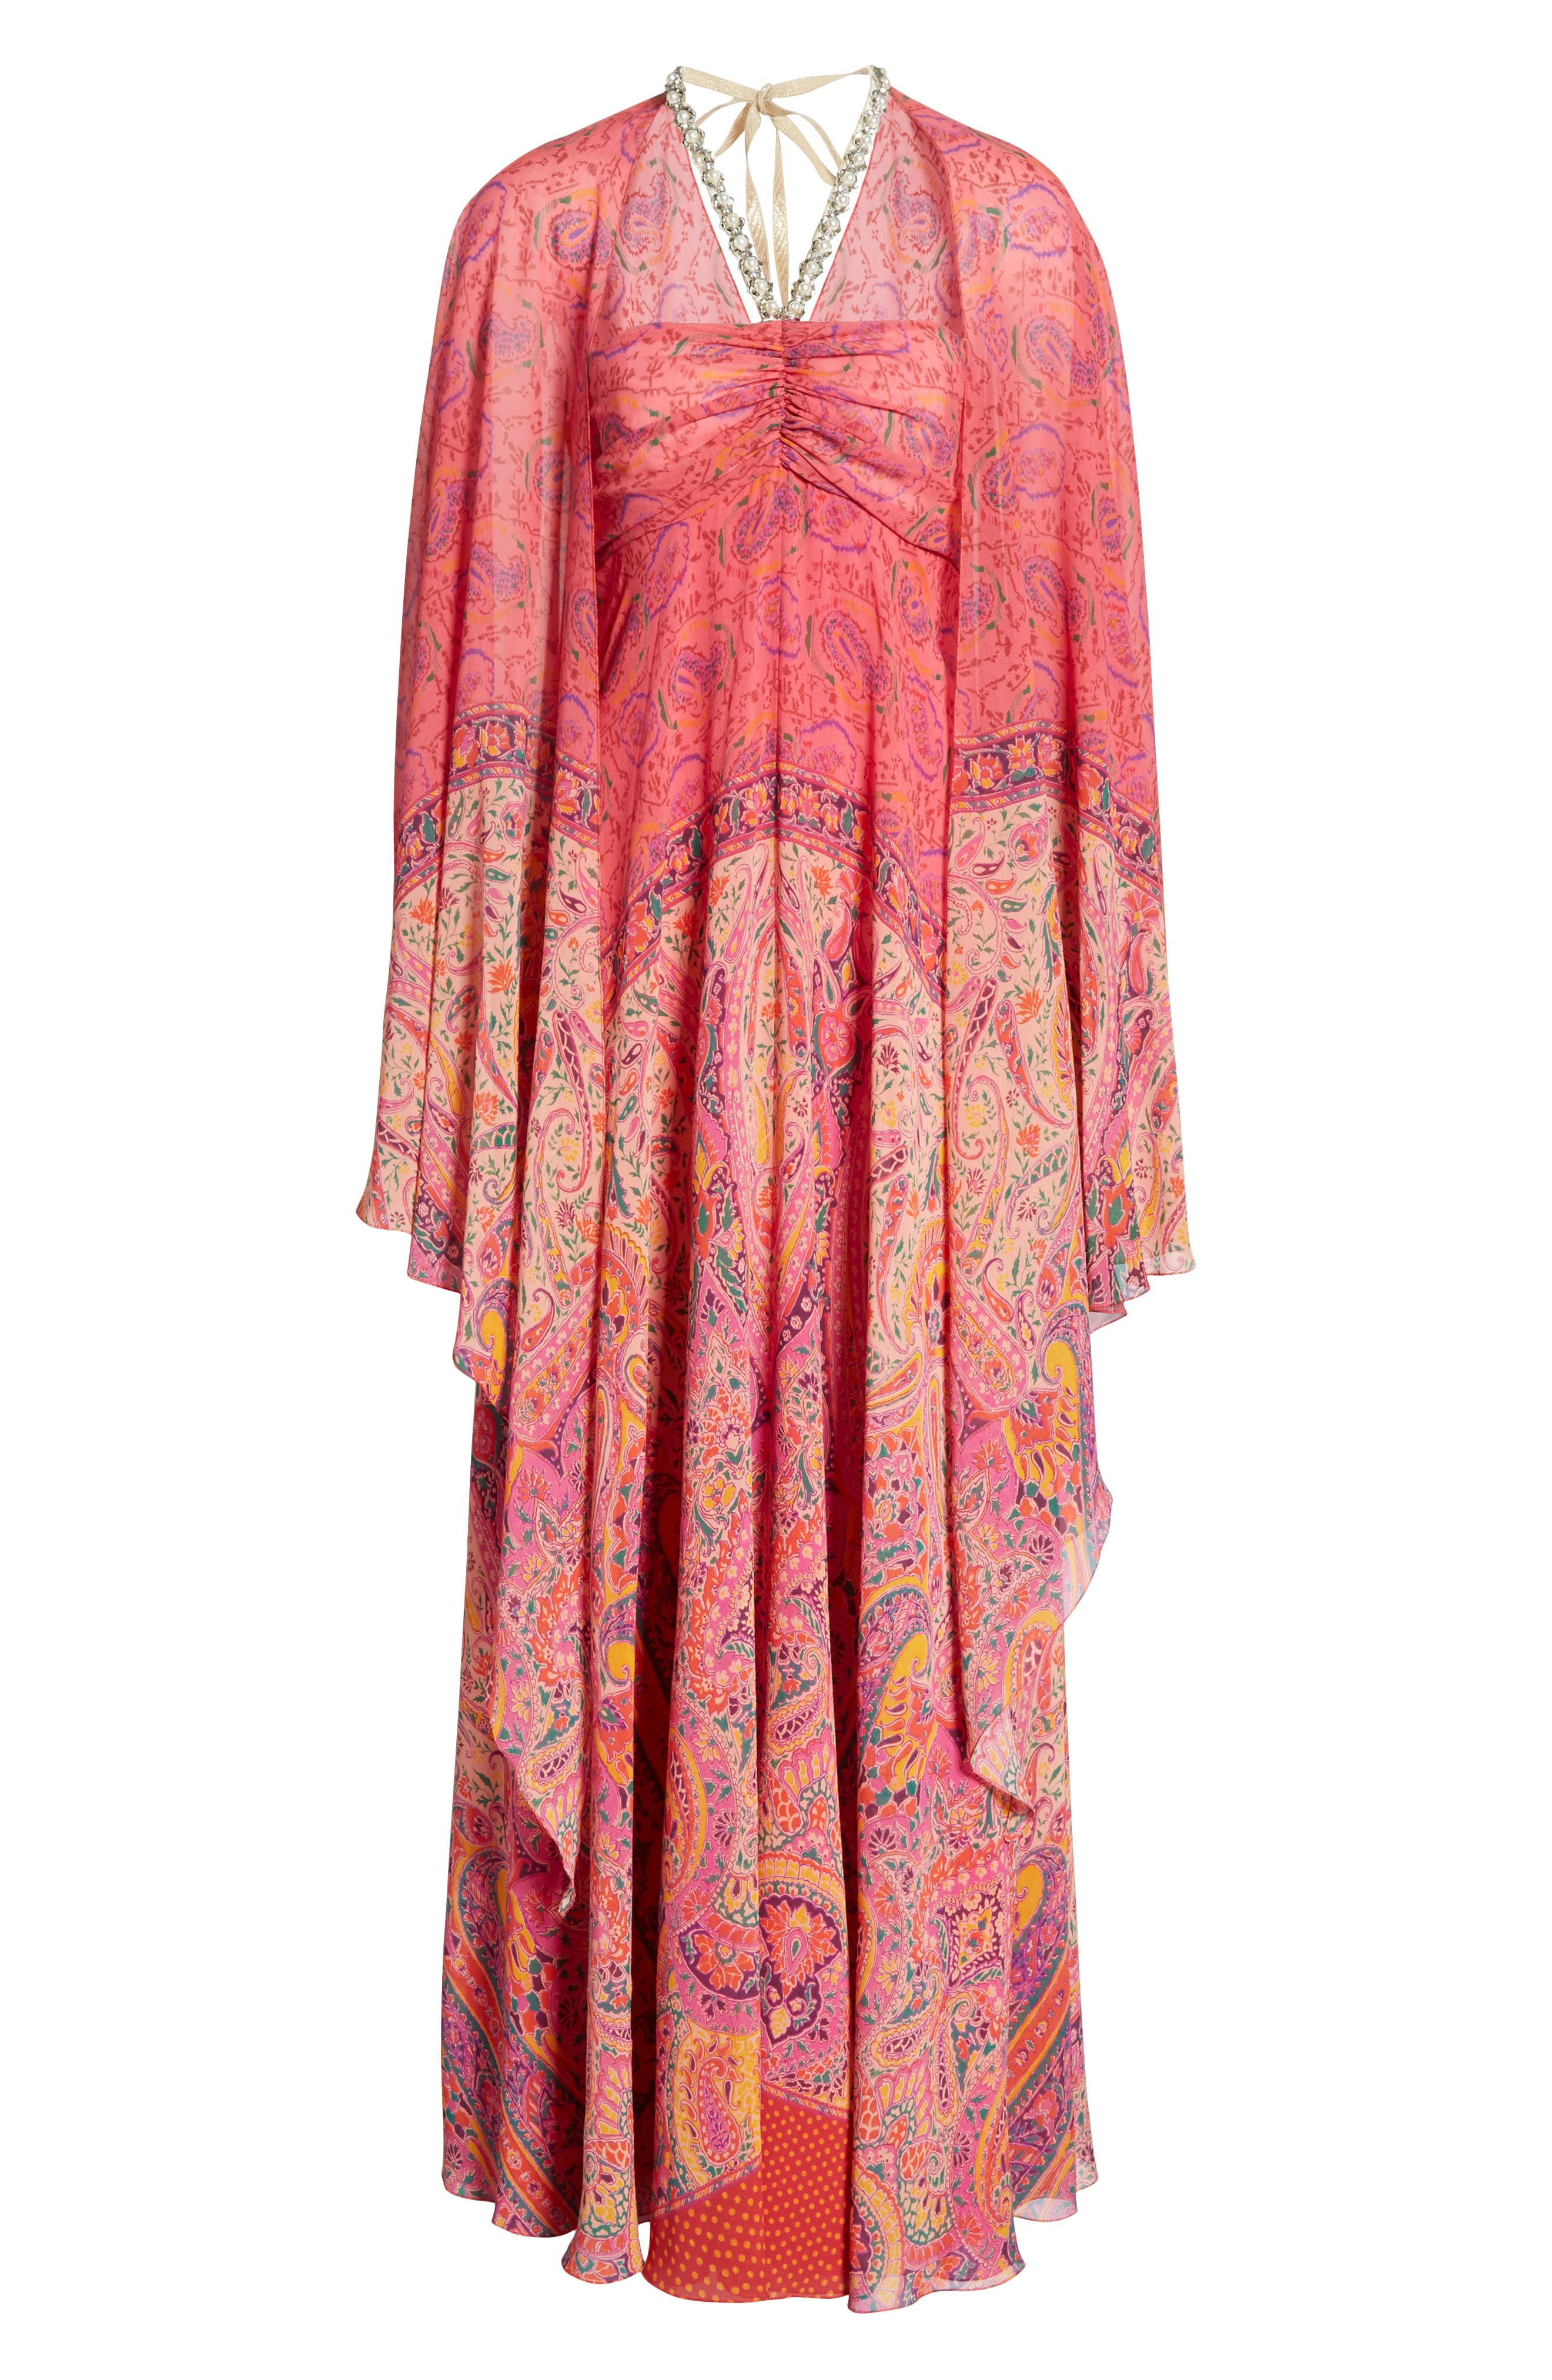 Beaded Halter Neck Silk Maxi Dress with Cape,                             Alternate thumbnail 7, color,                             Pink